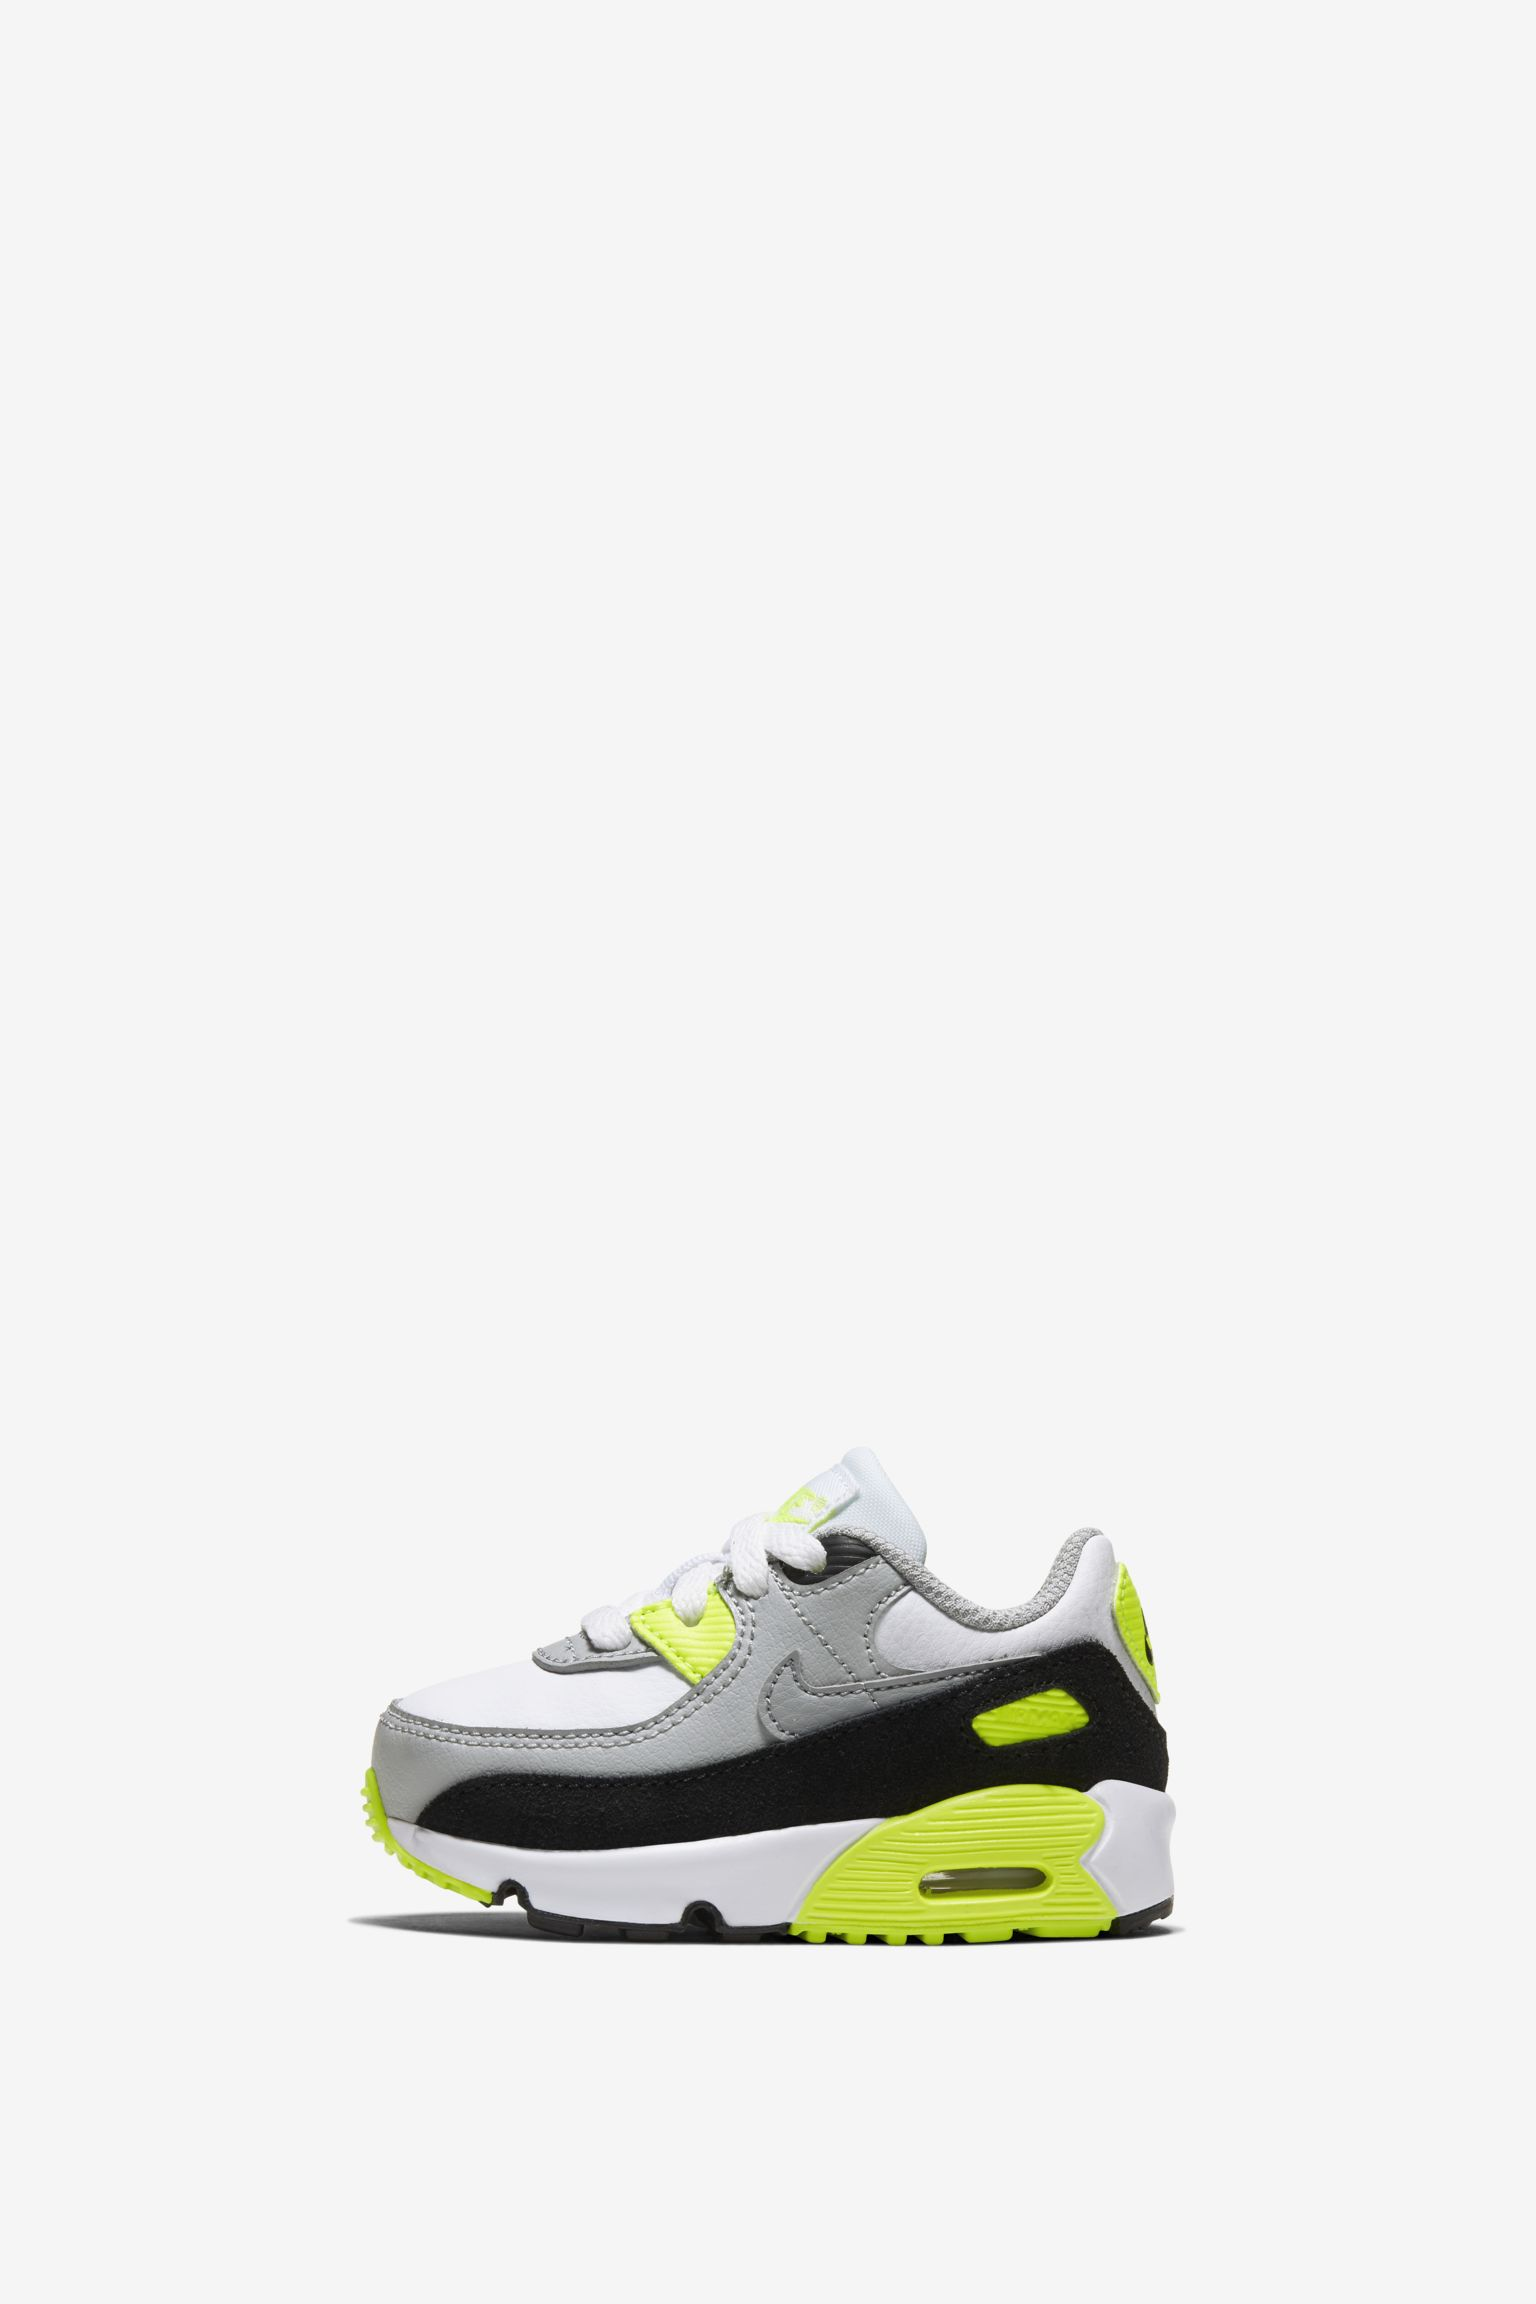 Big Kids' Air Max 90 'Volt/Particle Grey' Release Date. Nike SNKRS